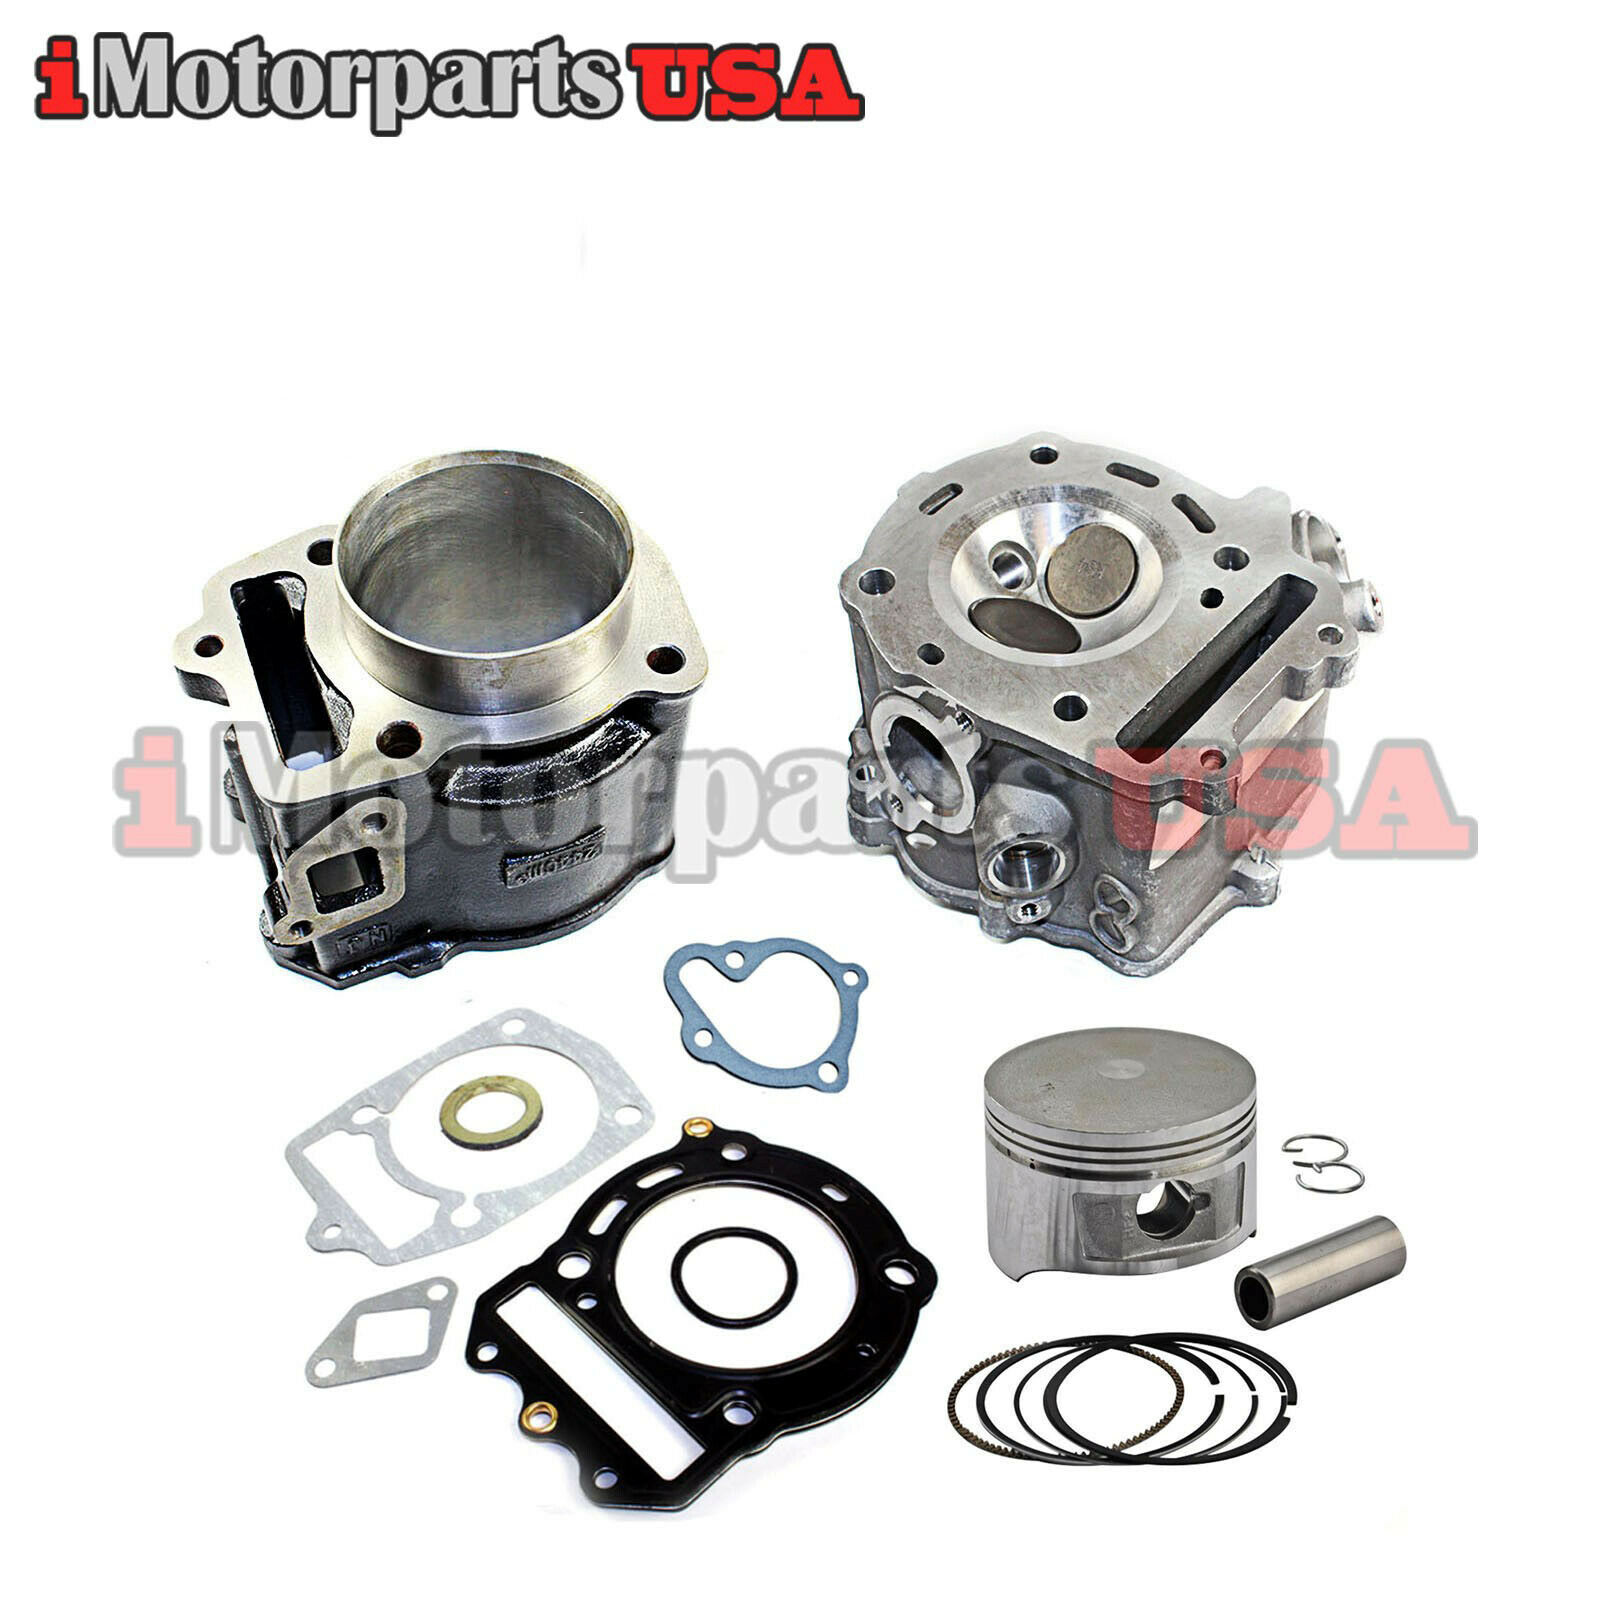 Engine Rebuild Cylinder Kit Jonway Yy250t Roketa Cfmoto Cf250 Gy6 Jeep Cj5 Wiring Harness 250 1 Of 4free Shipping